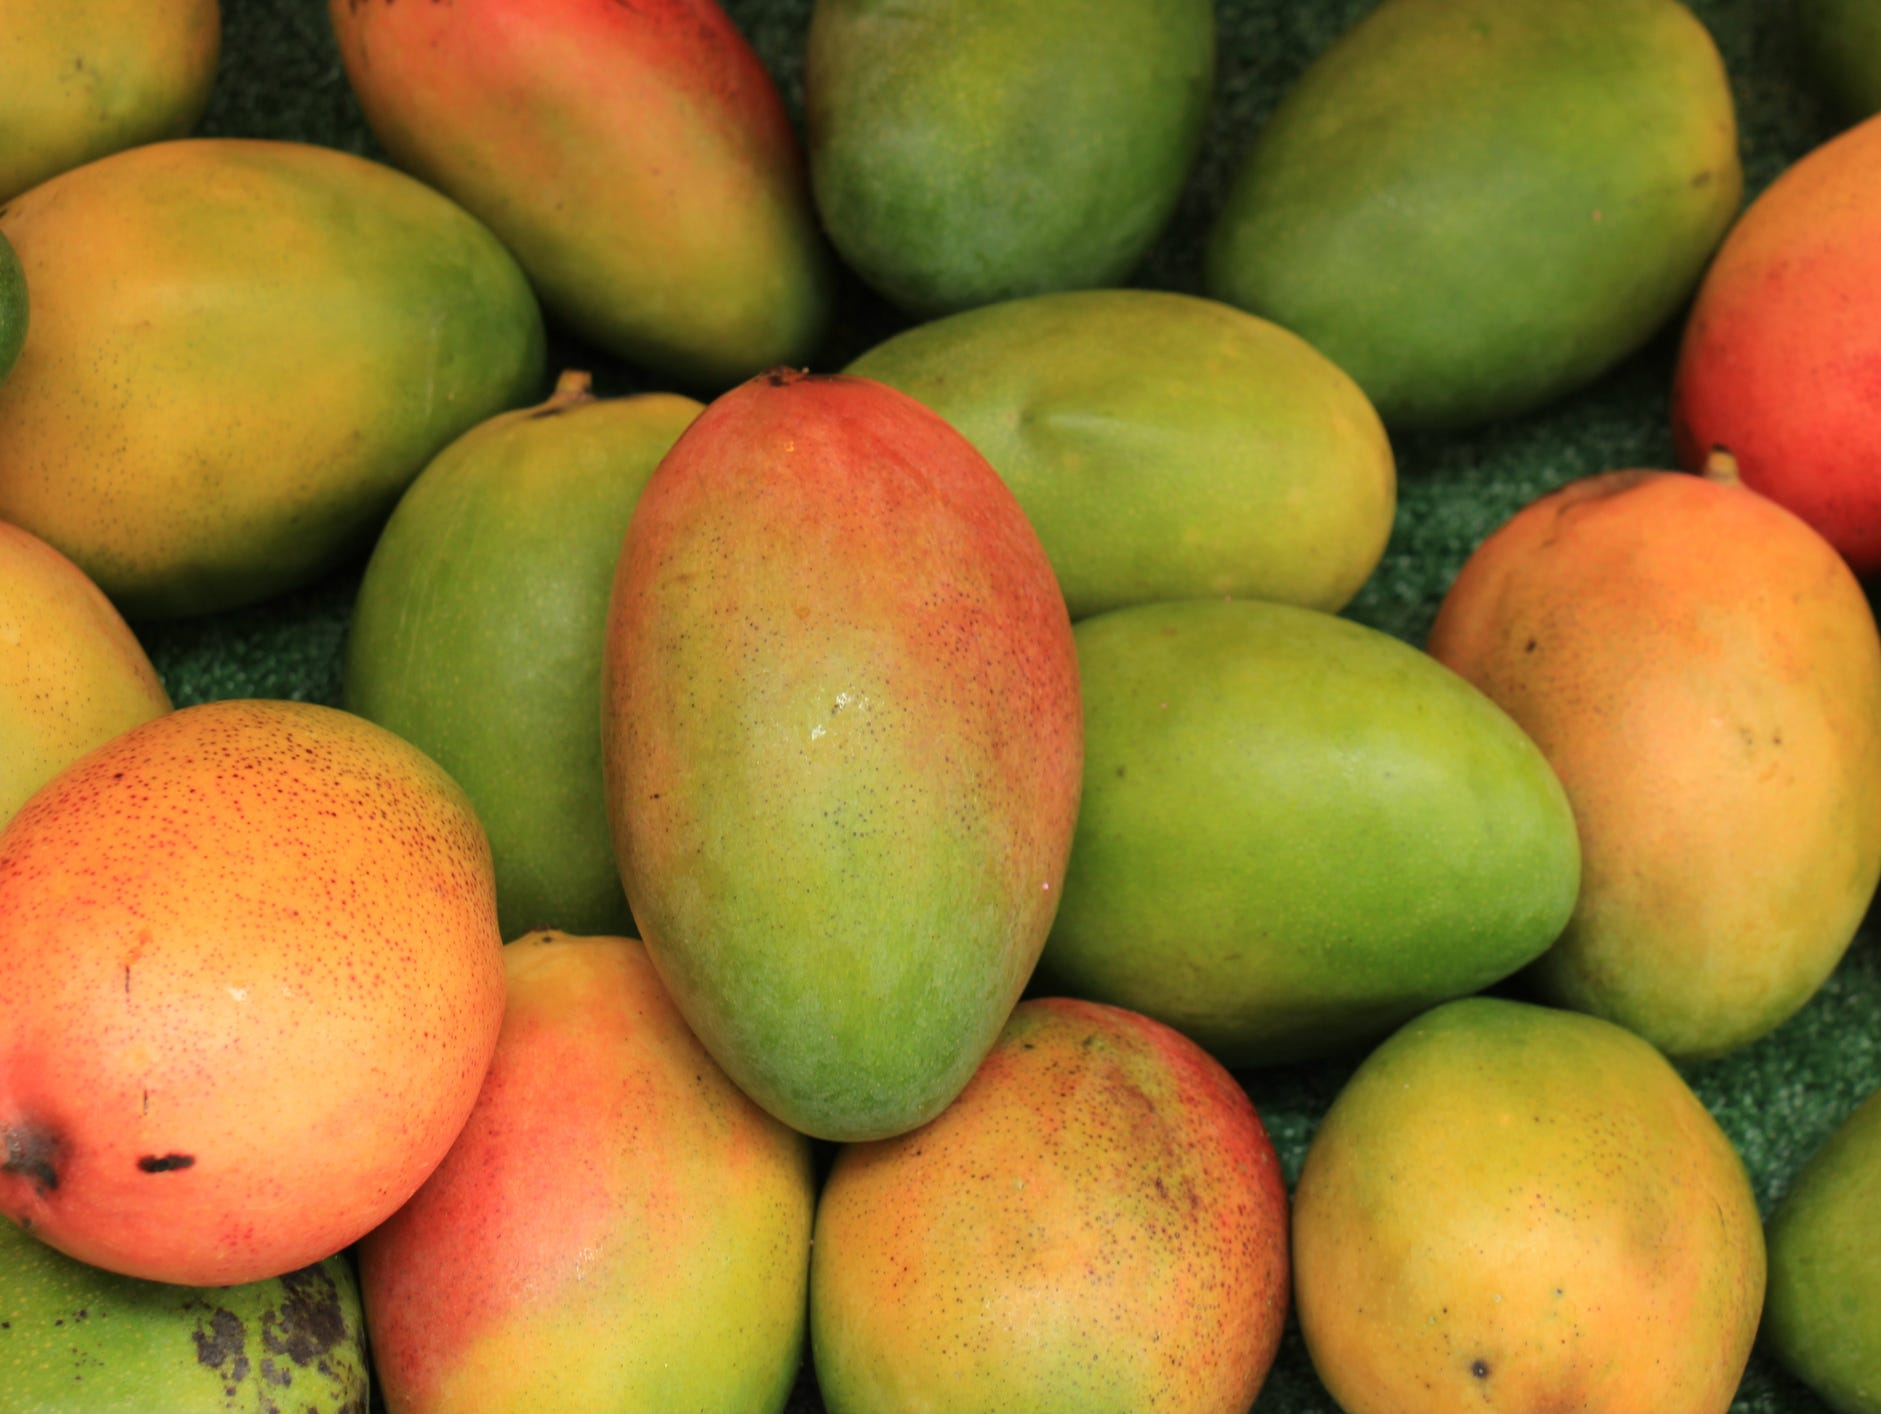 High in fiber, mangoes are so good for you and taste so good, too.